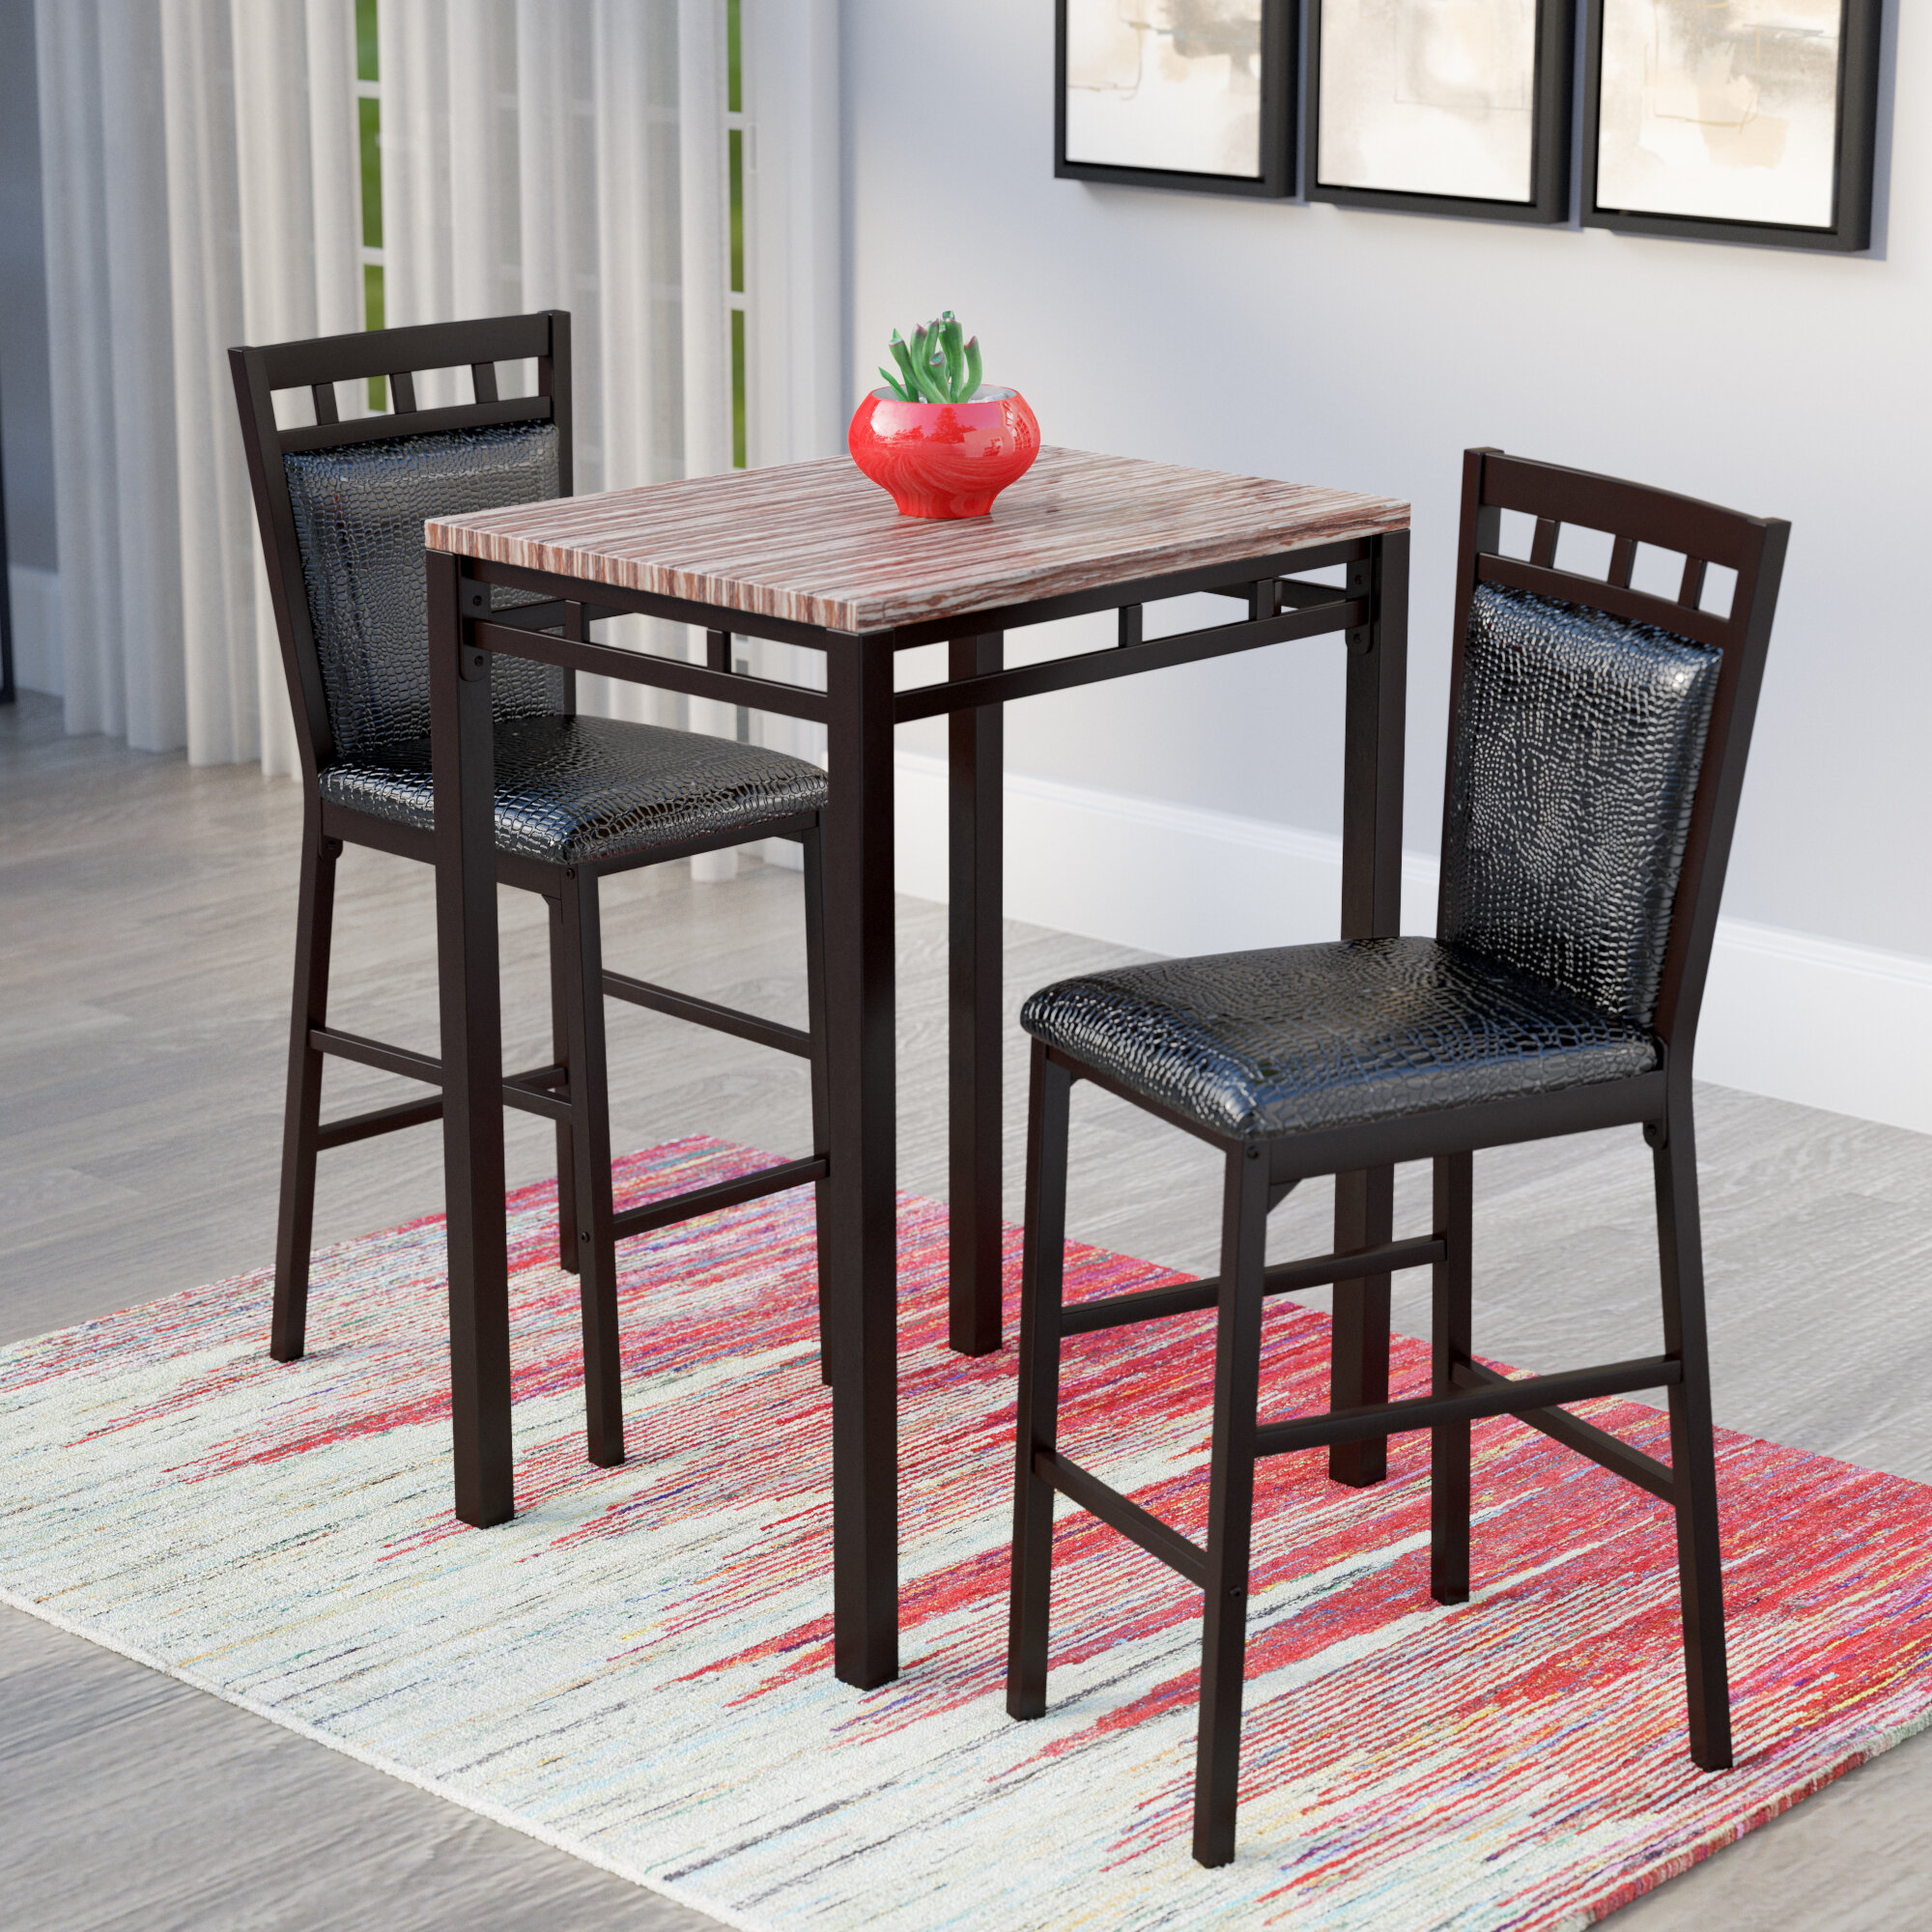 Laude Run Eric 3 Piece Pub Table Set